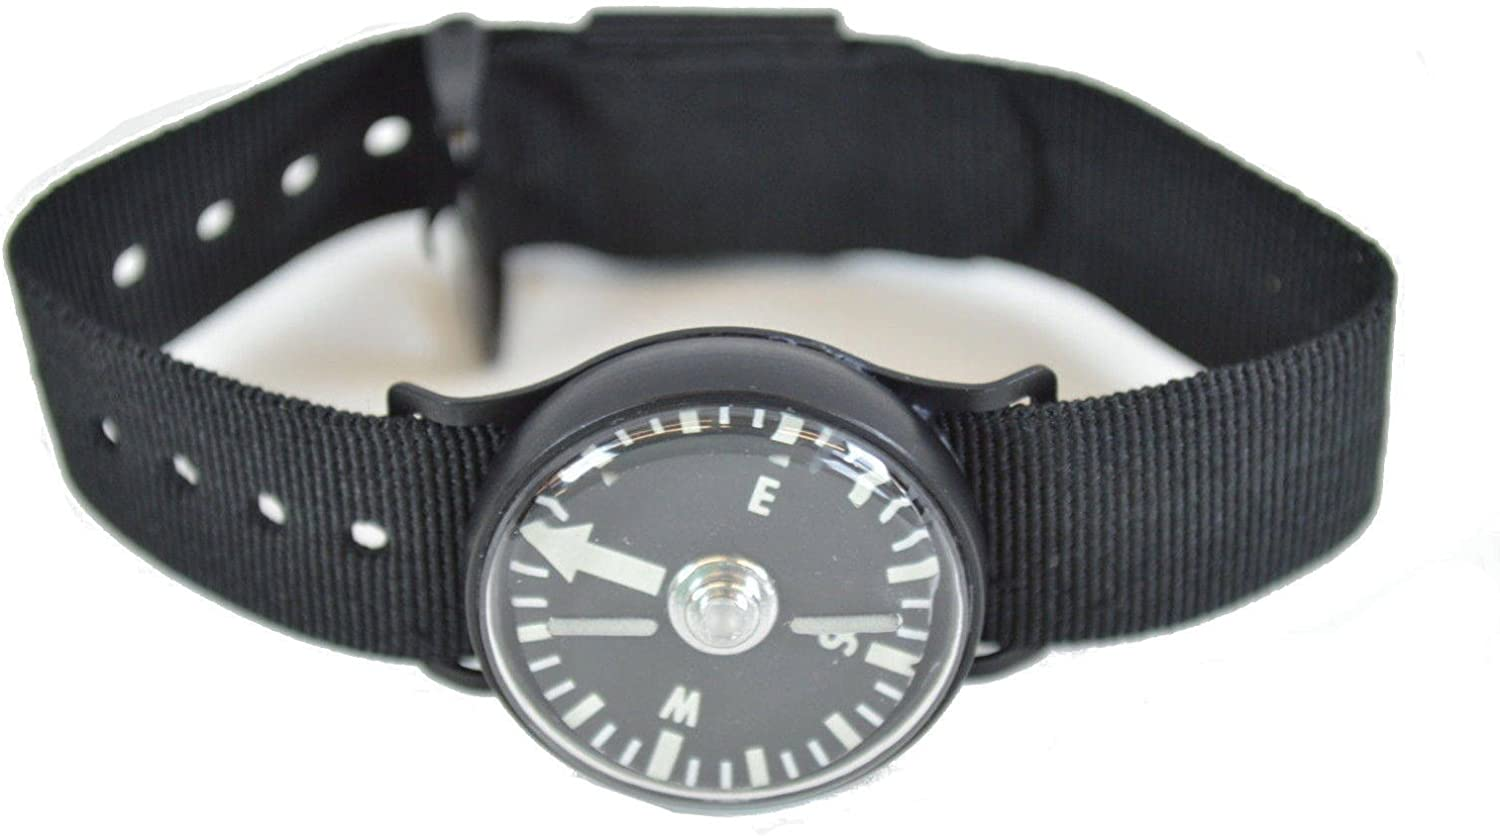 Wrist Compass Branded goods Official Military Very popular Issue - Phosphorescent